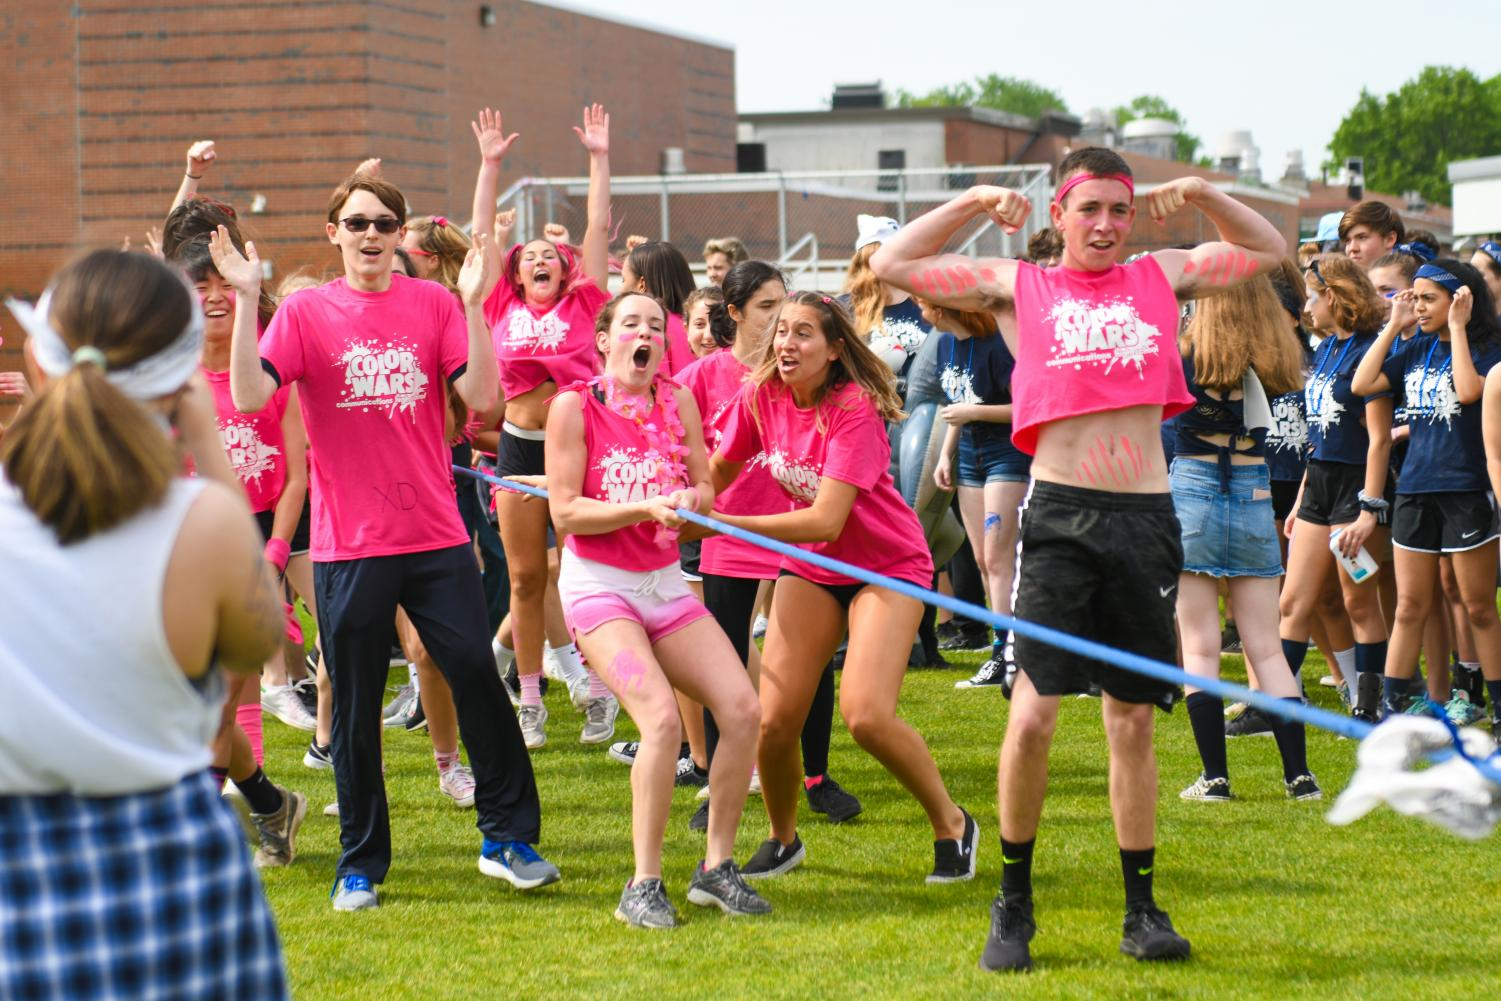 Pink team reacts to their tug-of-war win.